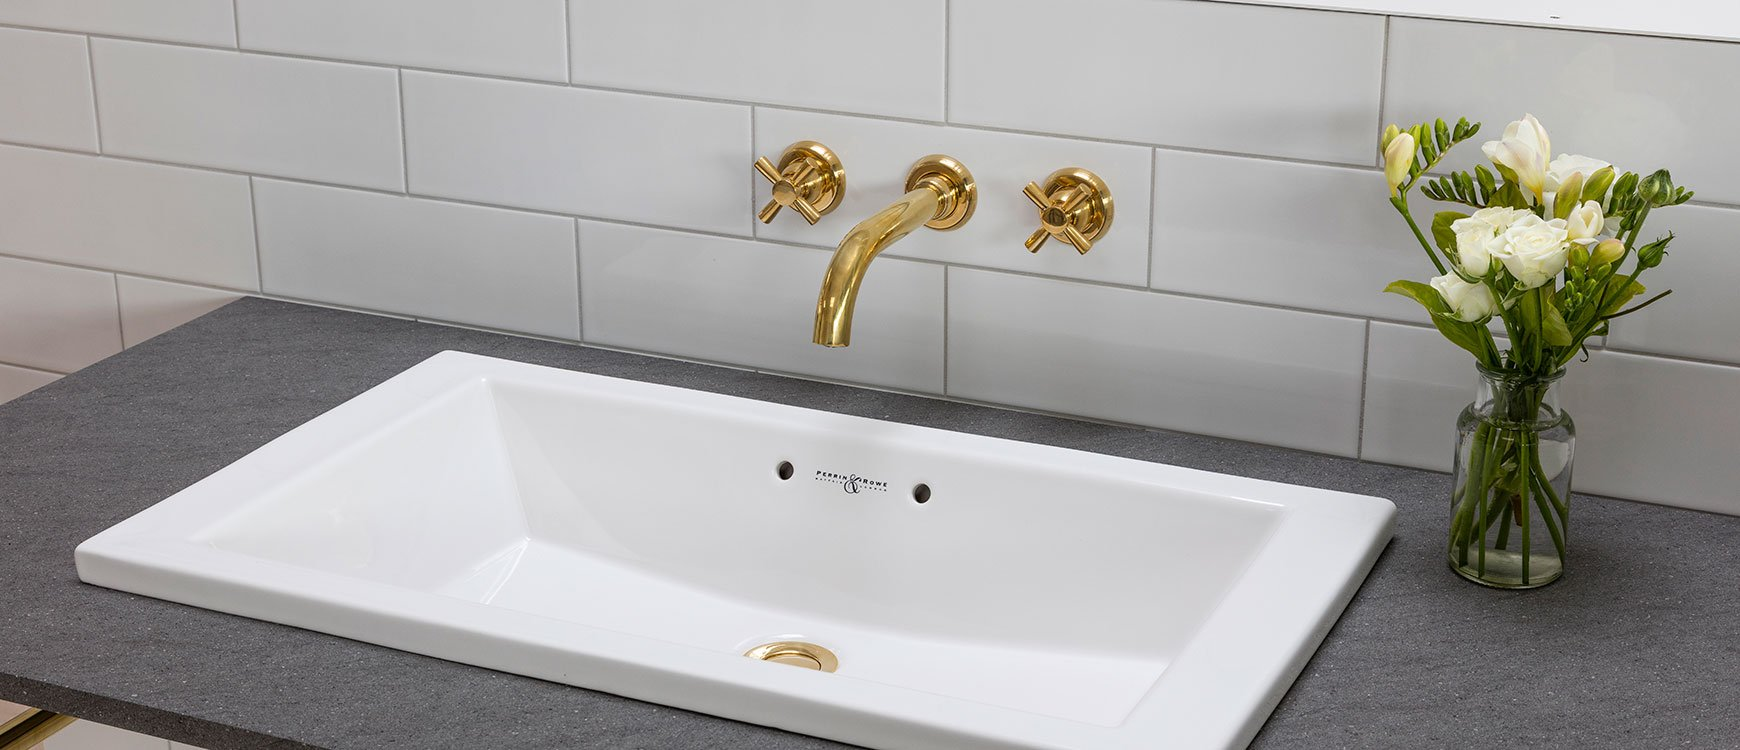 Best Quality Basin Taps | Buy Bathroom Taps in Australia online ...